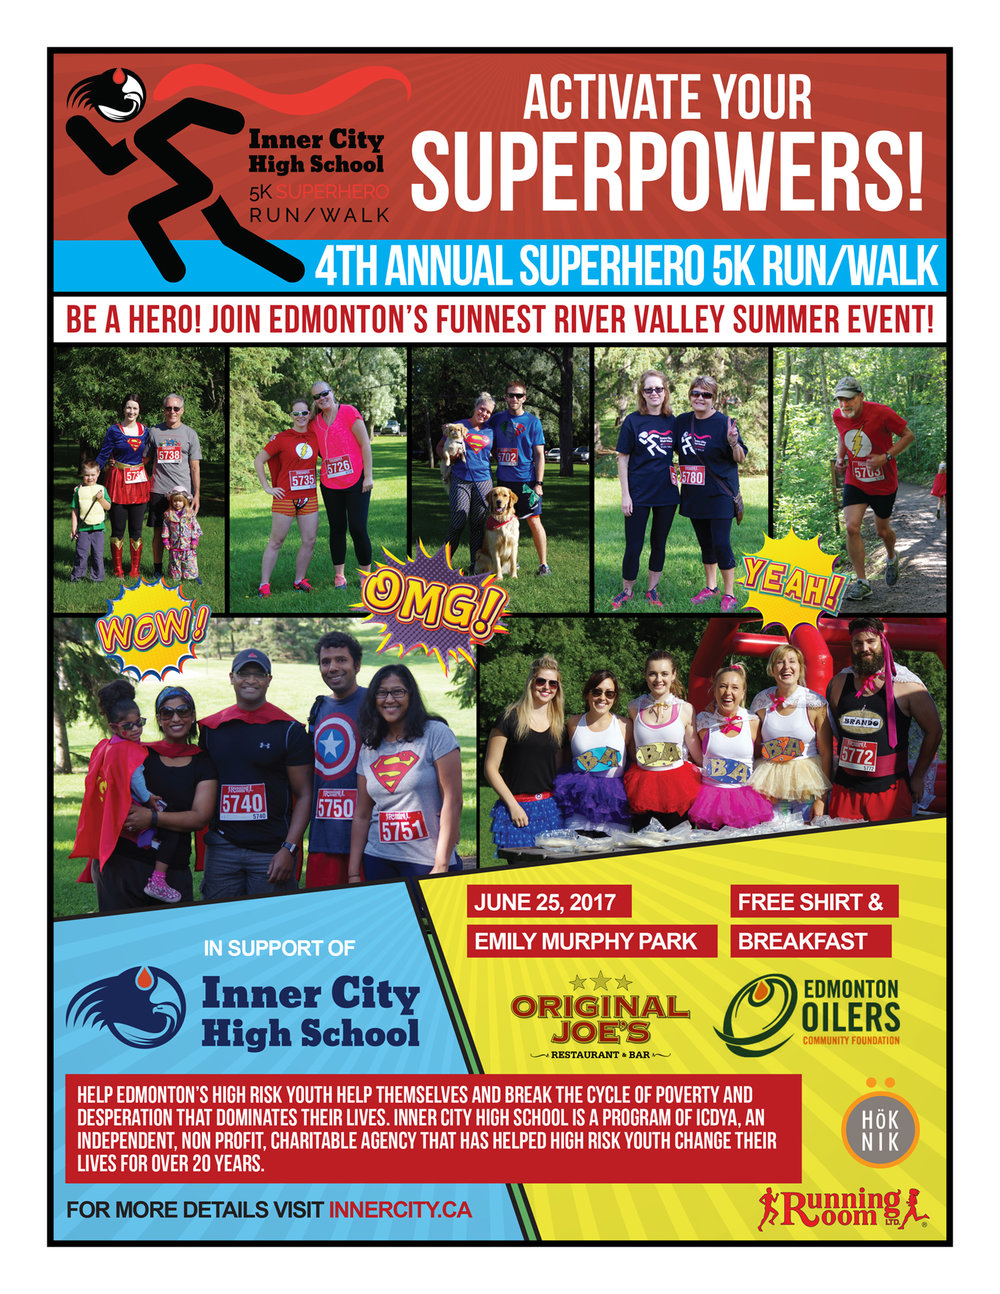 Download Our Race Posters! We have posters n two sizes. Print them and share the news! 8.5x11 Poster | 11x17 Poster